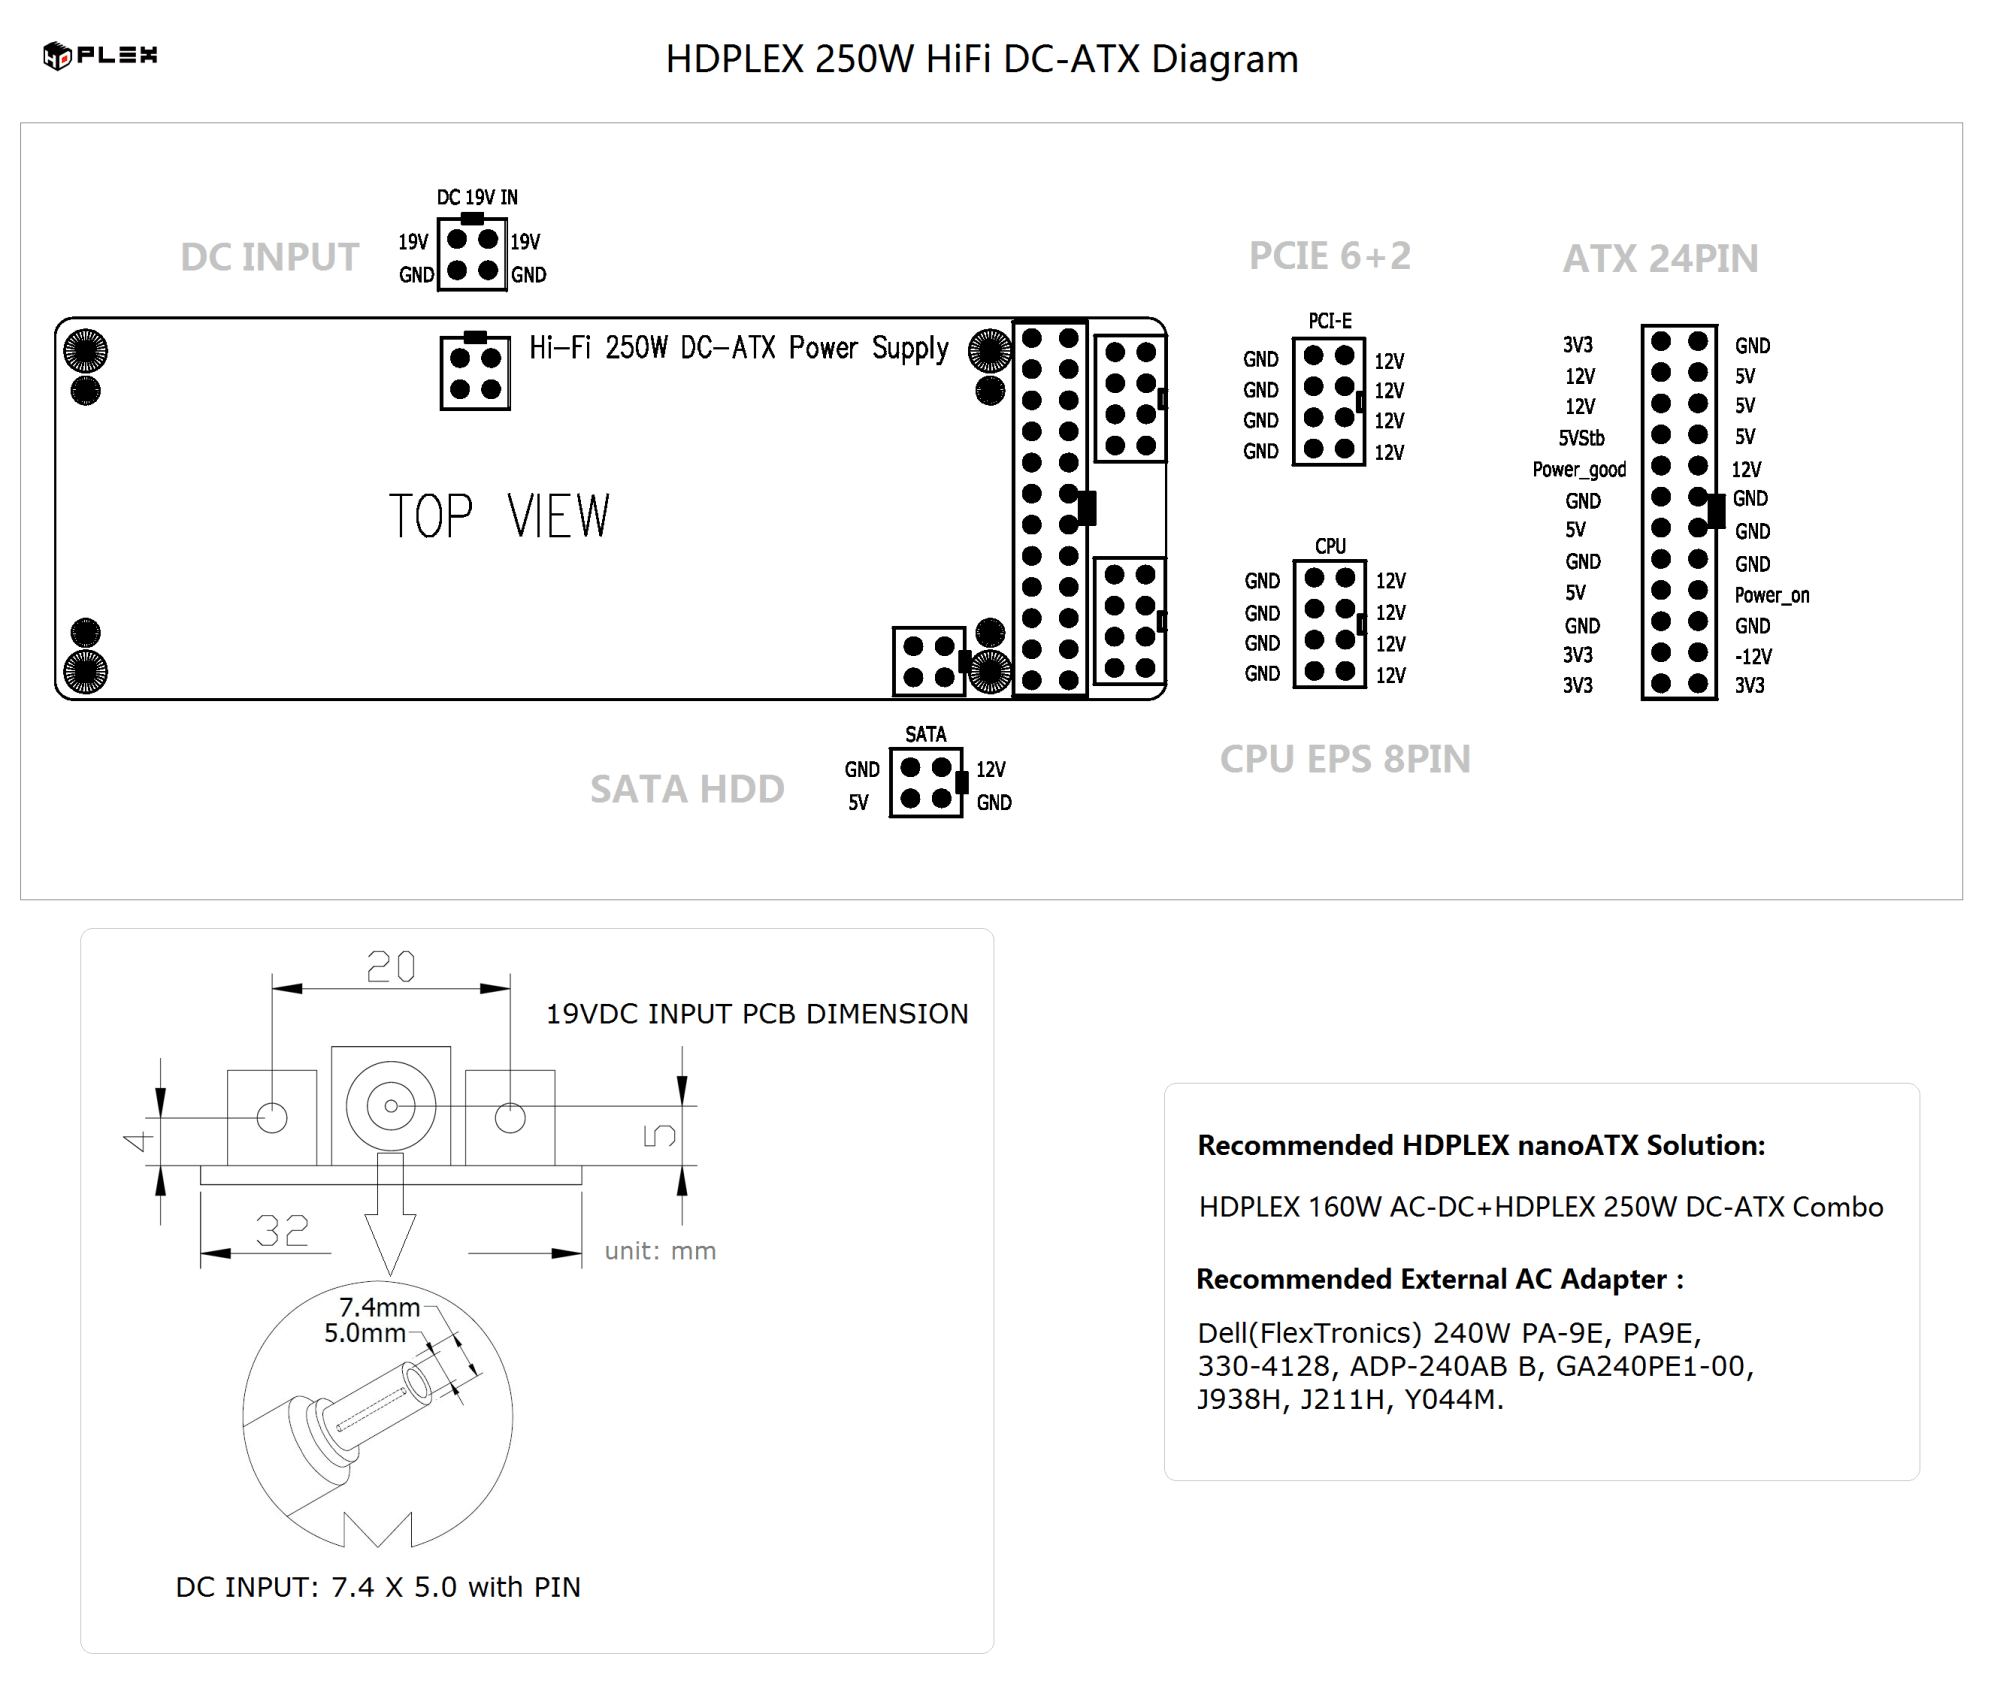 hight resolution of hdplex 250w hifi dc atx diagram discontinued